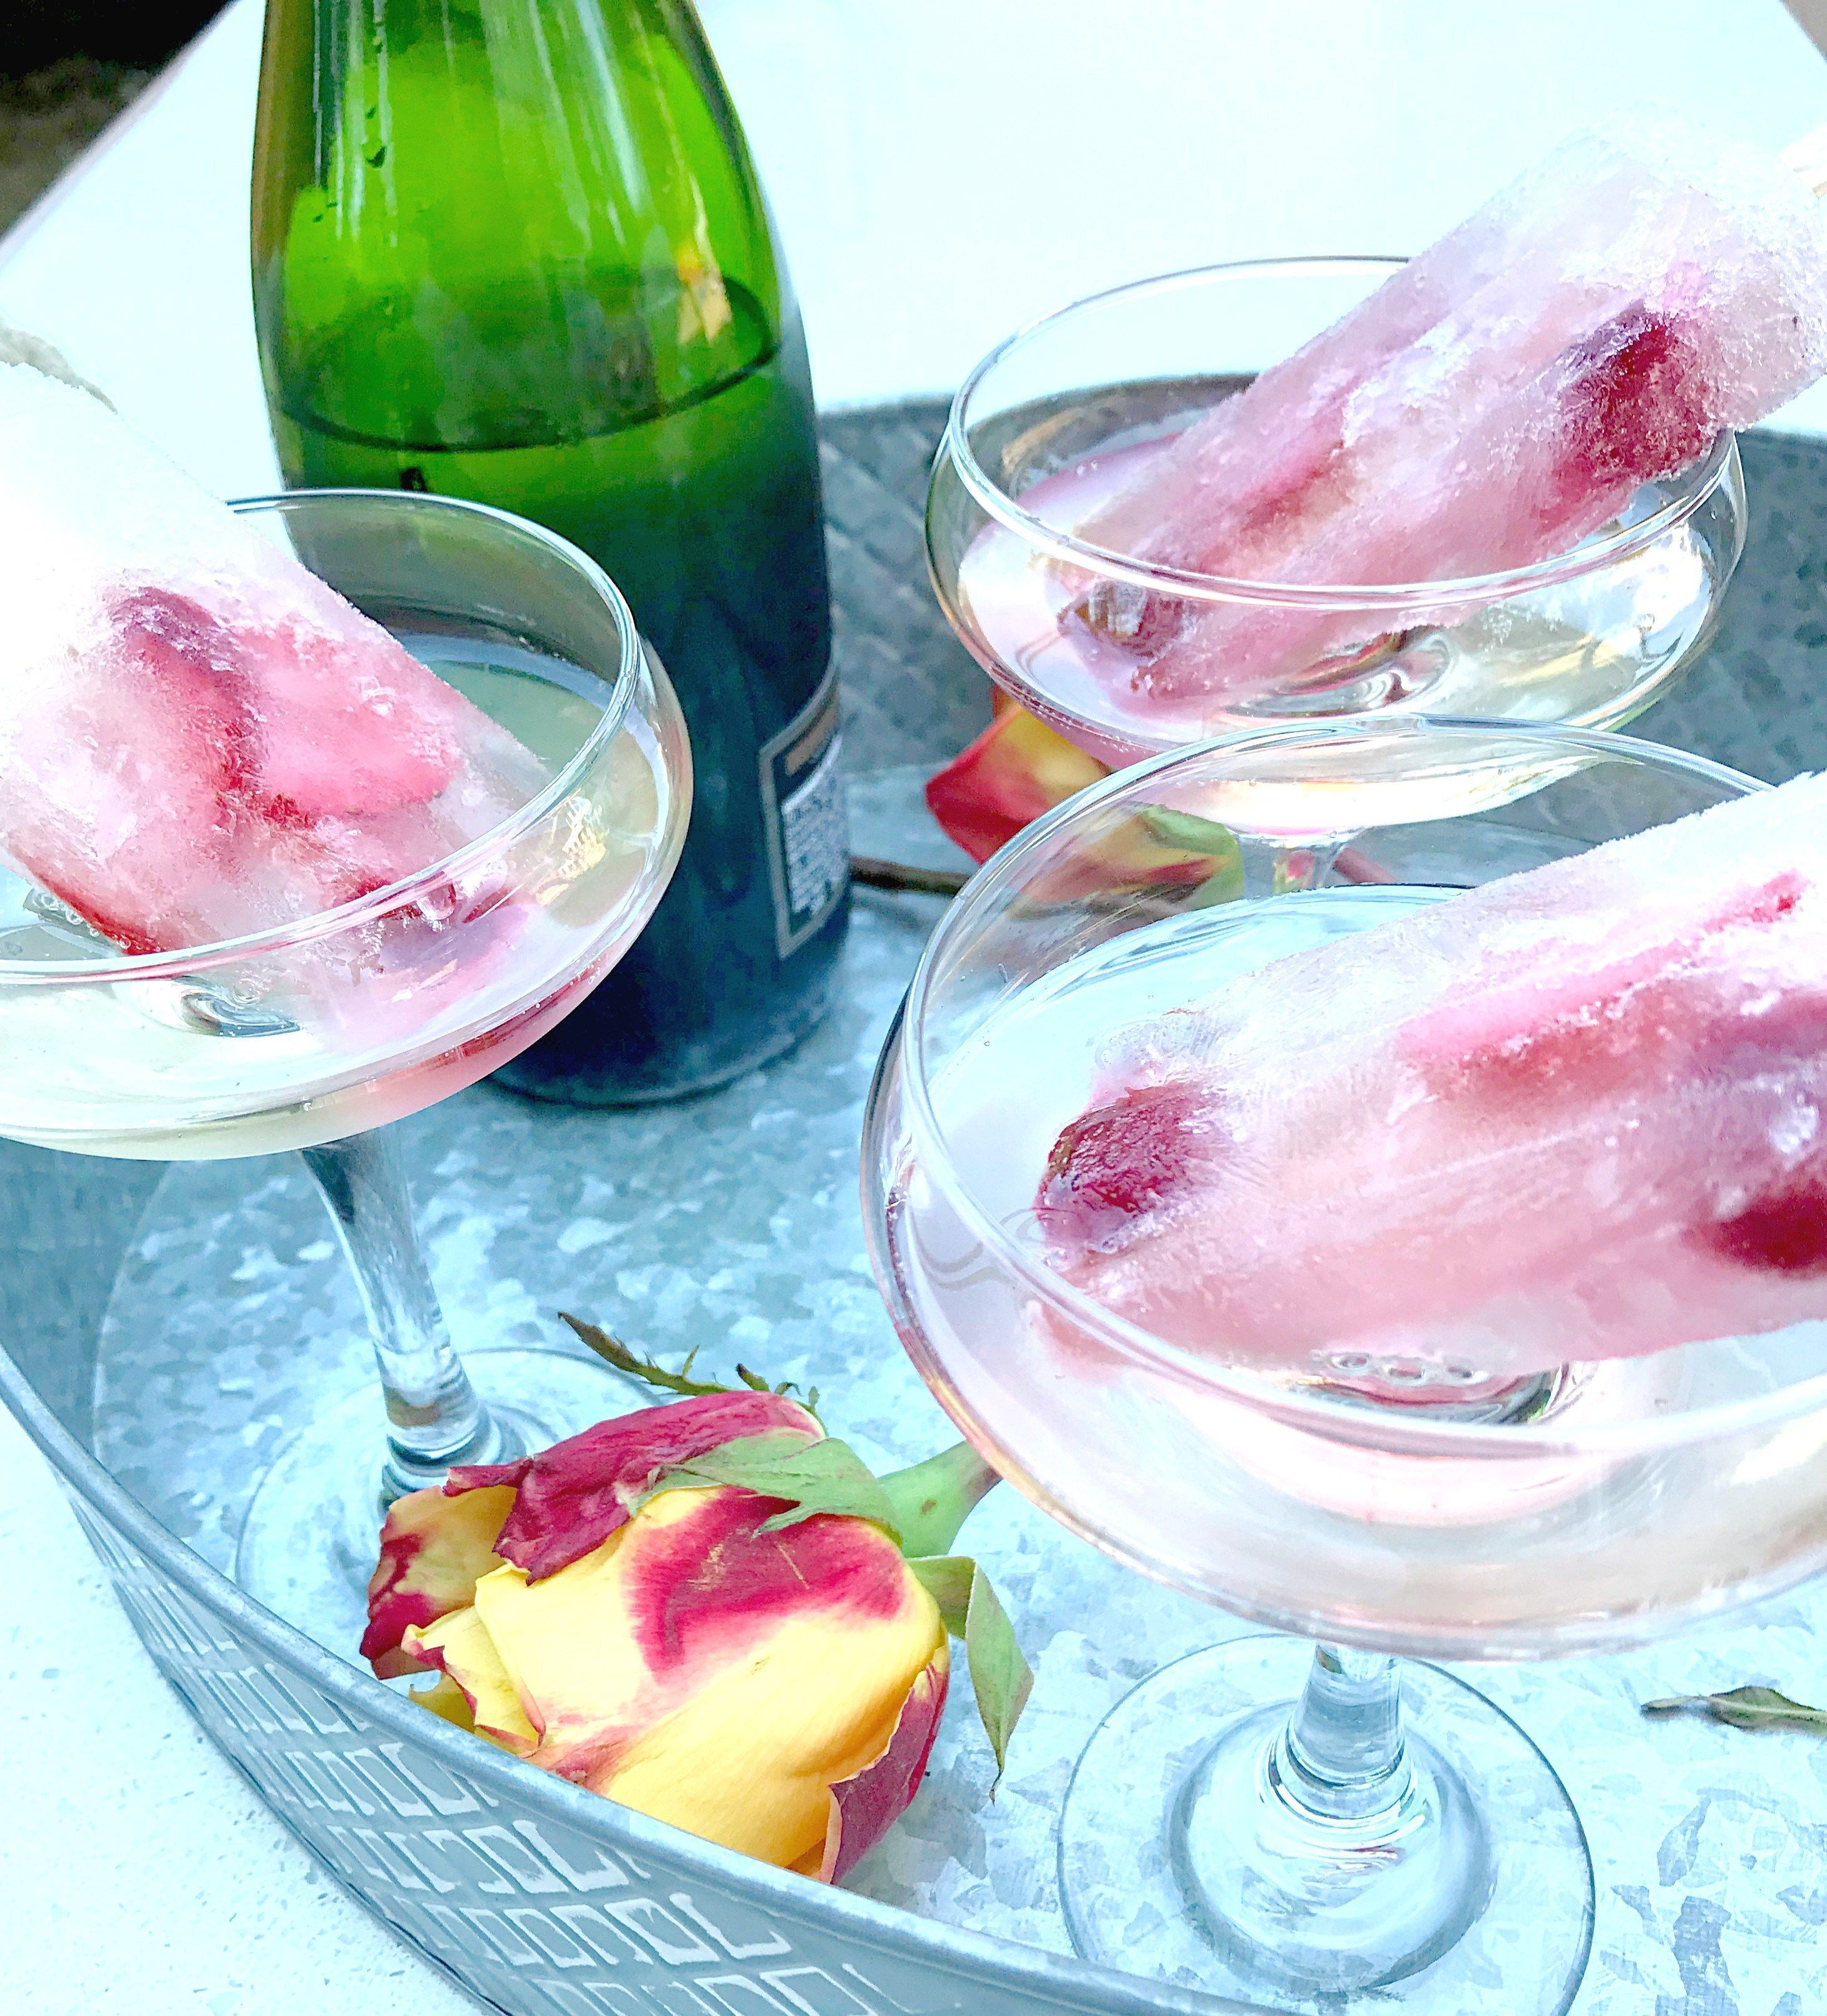 Champops? Champagne pops? Champagne popsicles? Call them whatever you want, or don't call them anything. Just try them! These berry pretty champops are an easy way to step up your entertaining game this summer. They are the perfect boozy summer treat, and unarguably the best way to keep your glass of champagne cold. Seriously, what better way to chill your champagne than with champagne? Move over frozen grapes, it's champops times to shine. #champagnepopsicles Champops? Champagne pops? Champ #champagnepopsicles